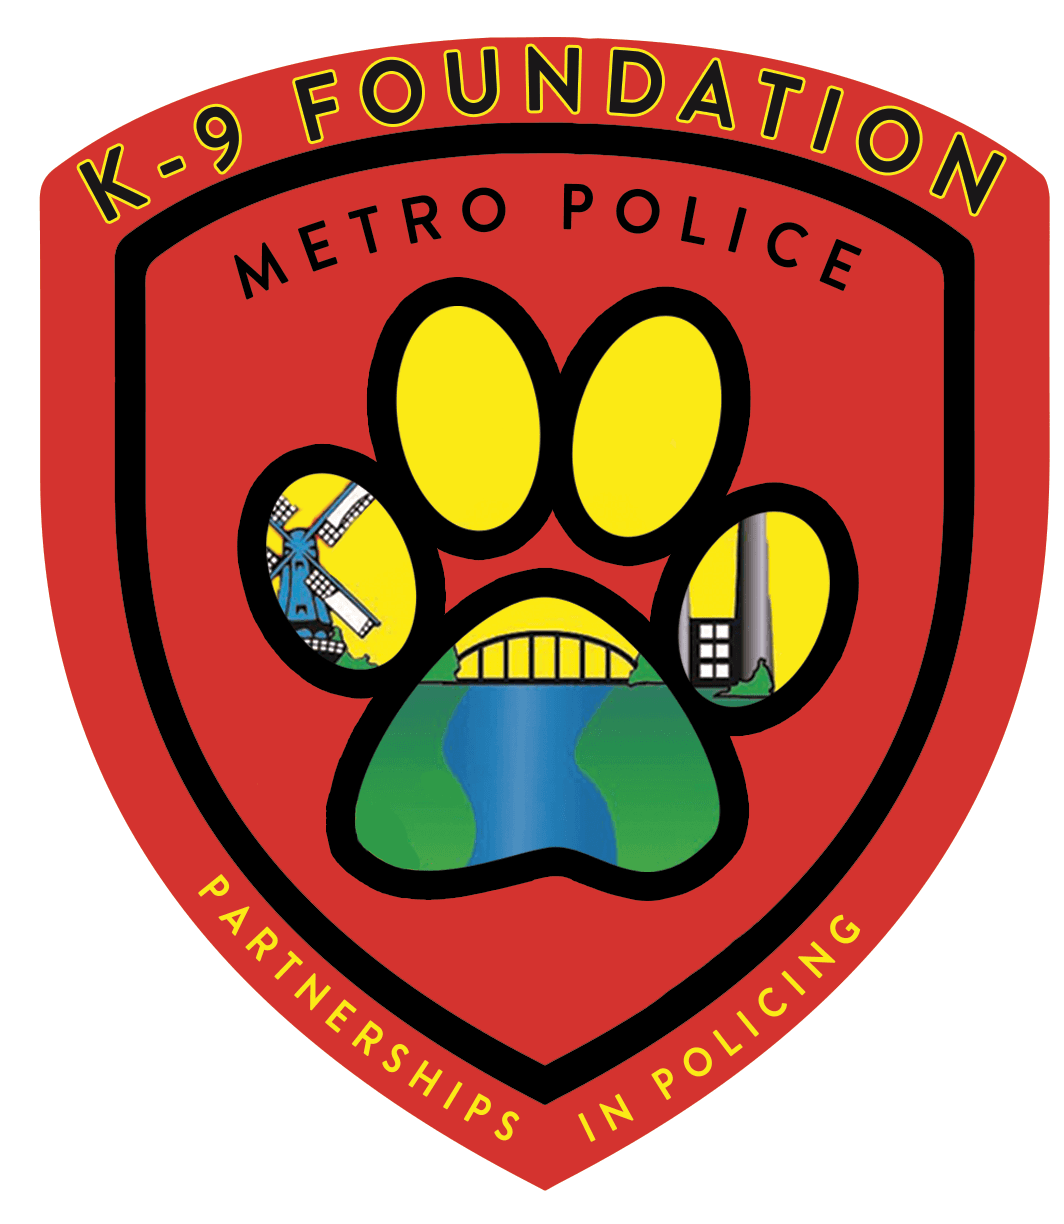 k-9 foundation (2)